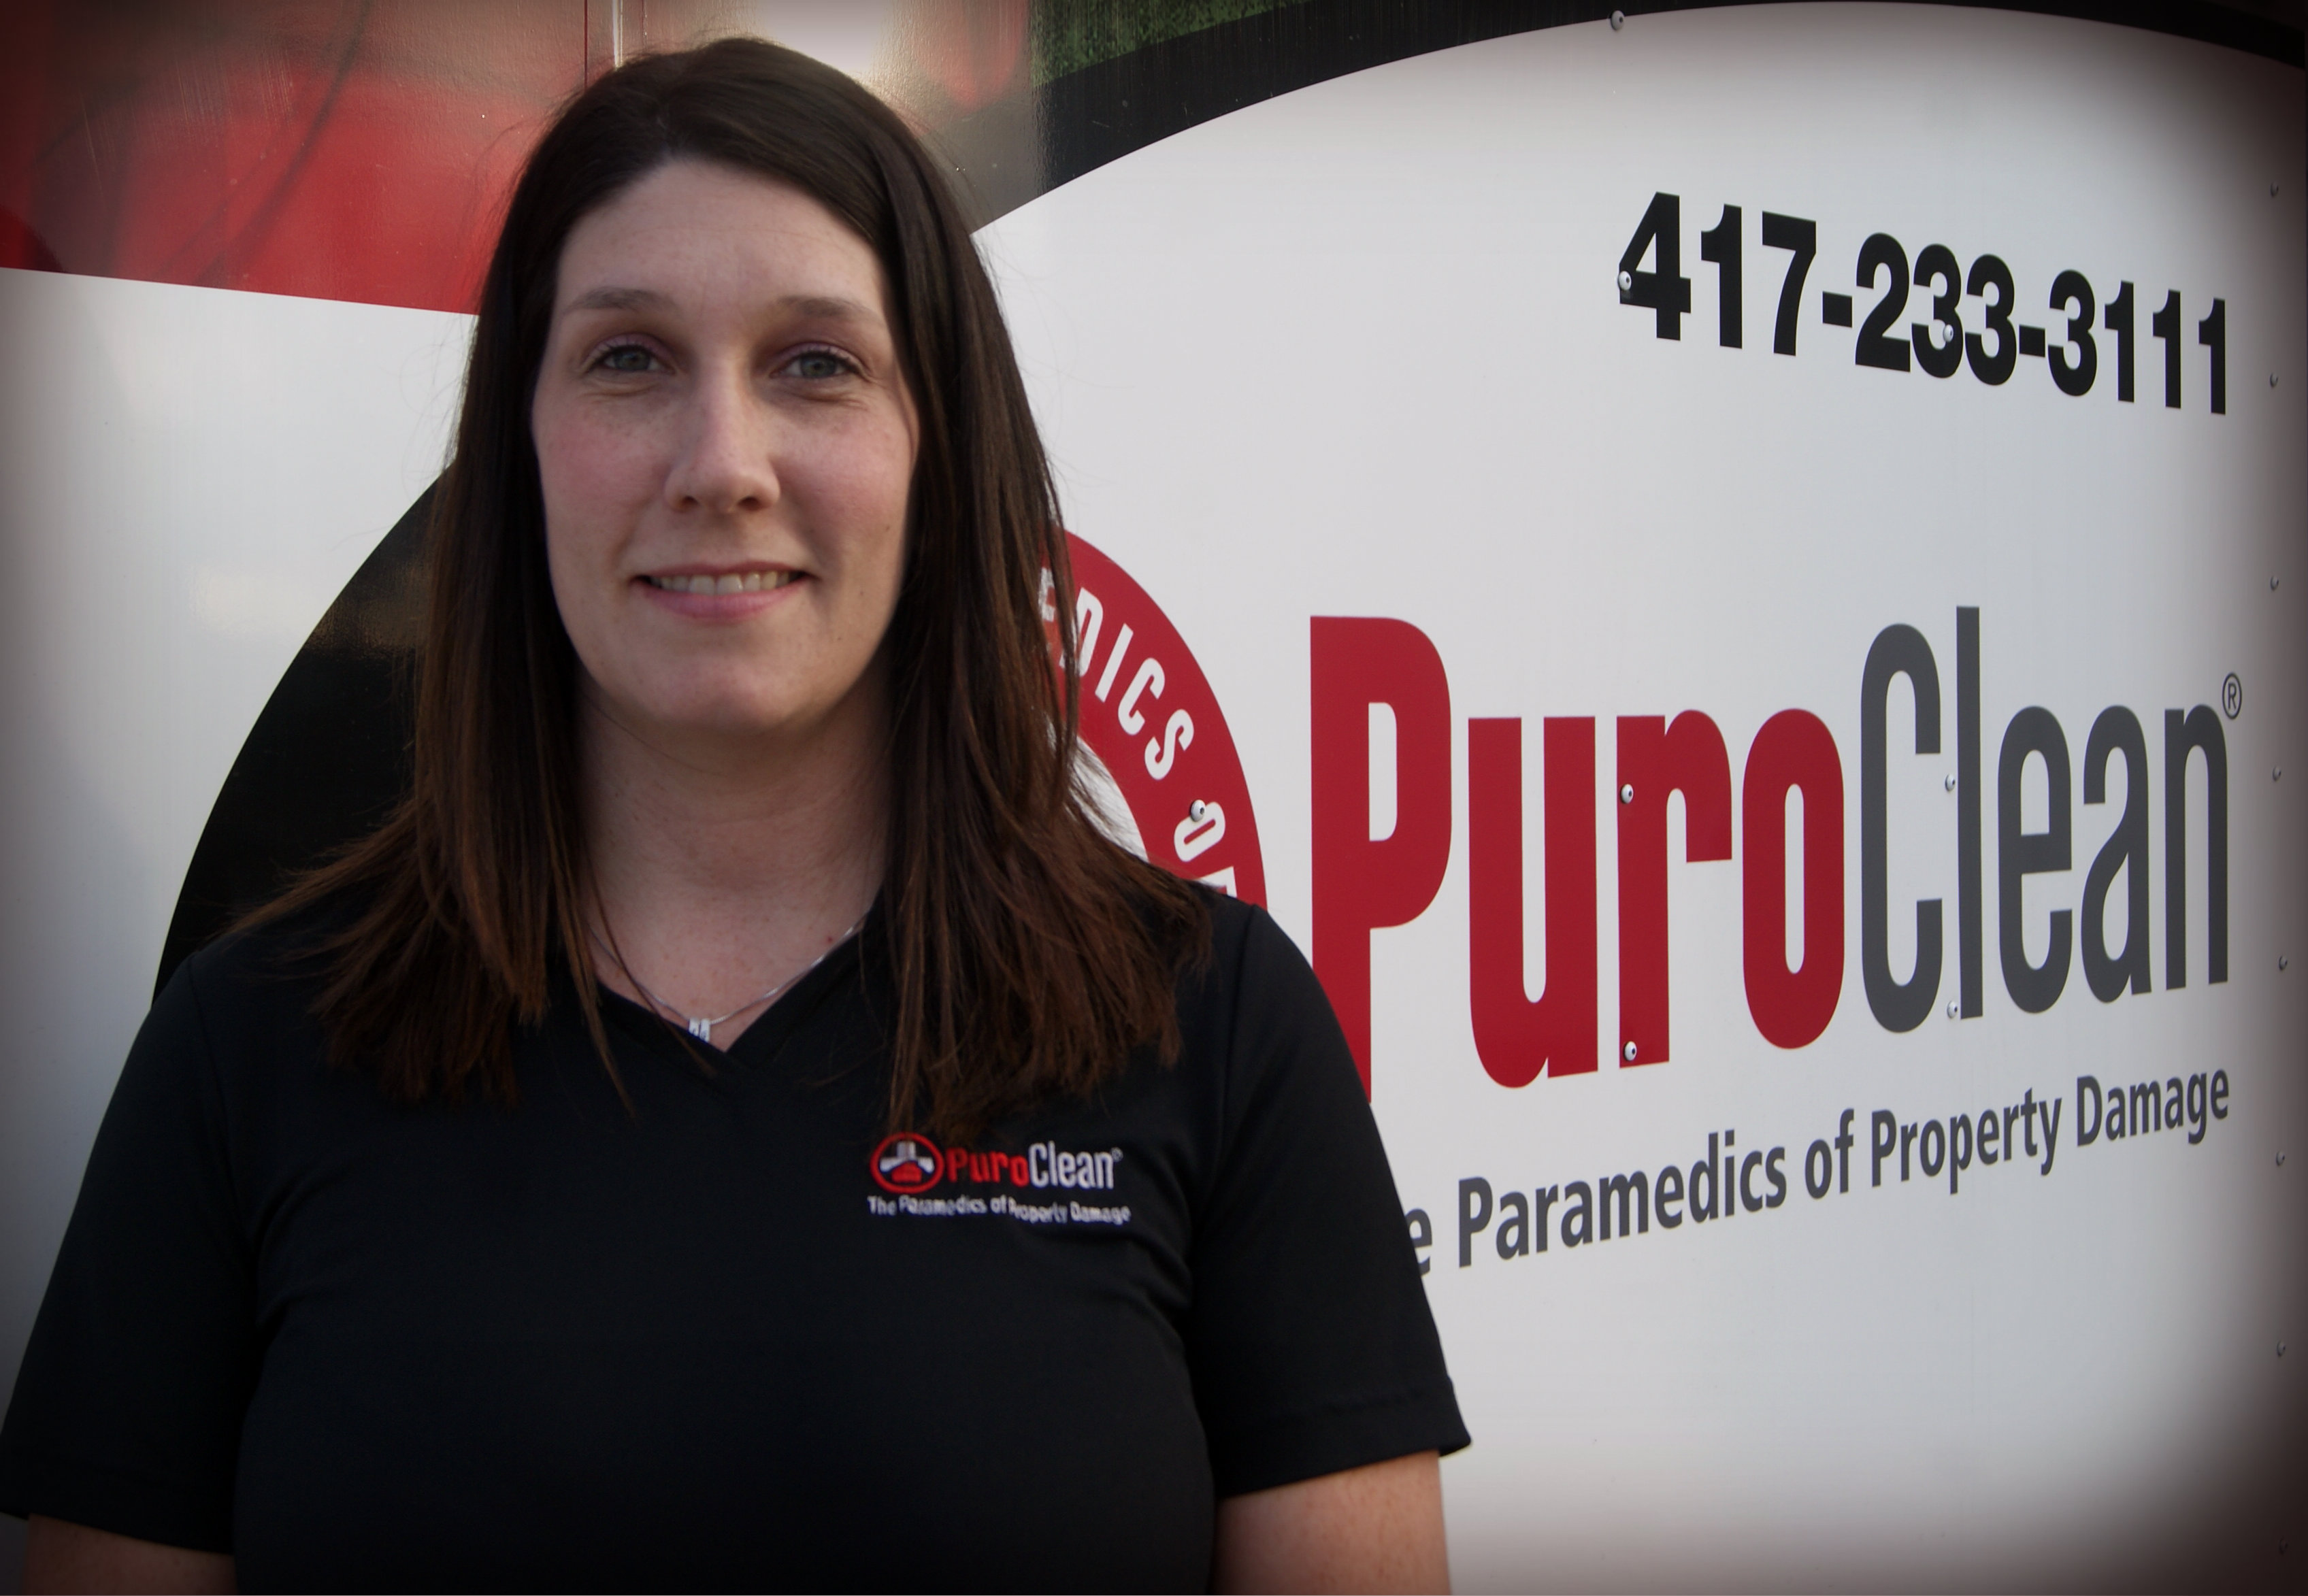 Christina Jameson - Co-Owner - PuroClean Certified Restoration Springfield MO